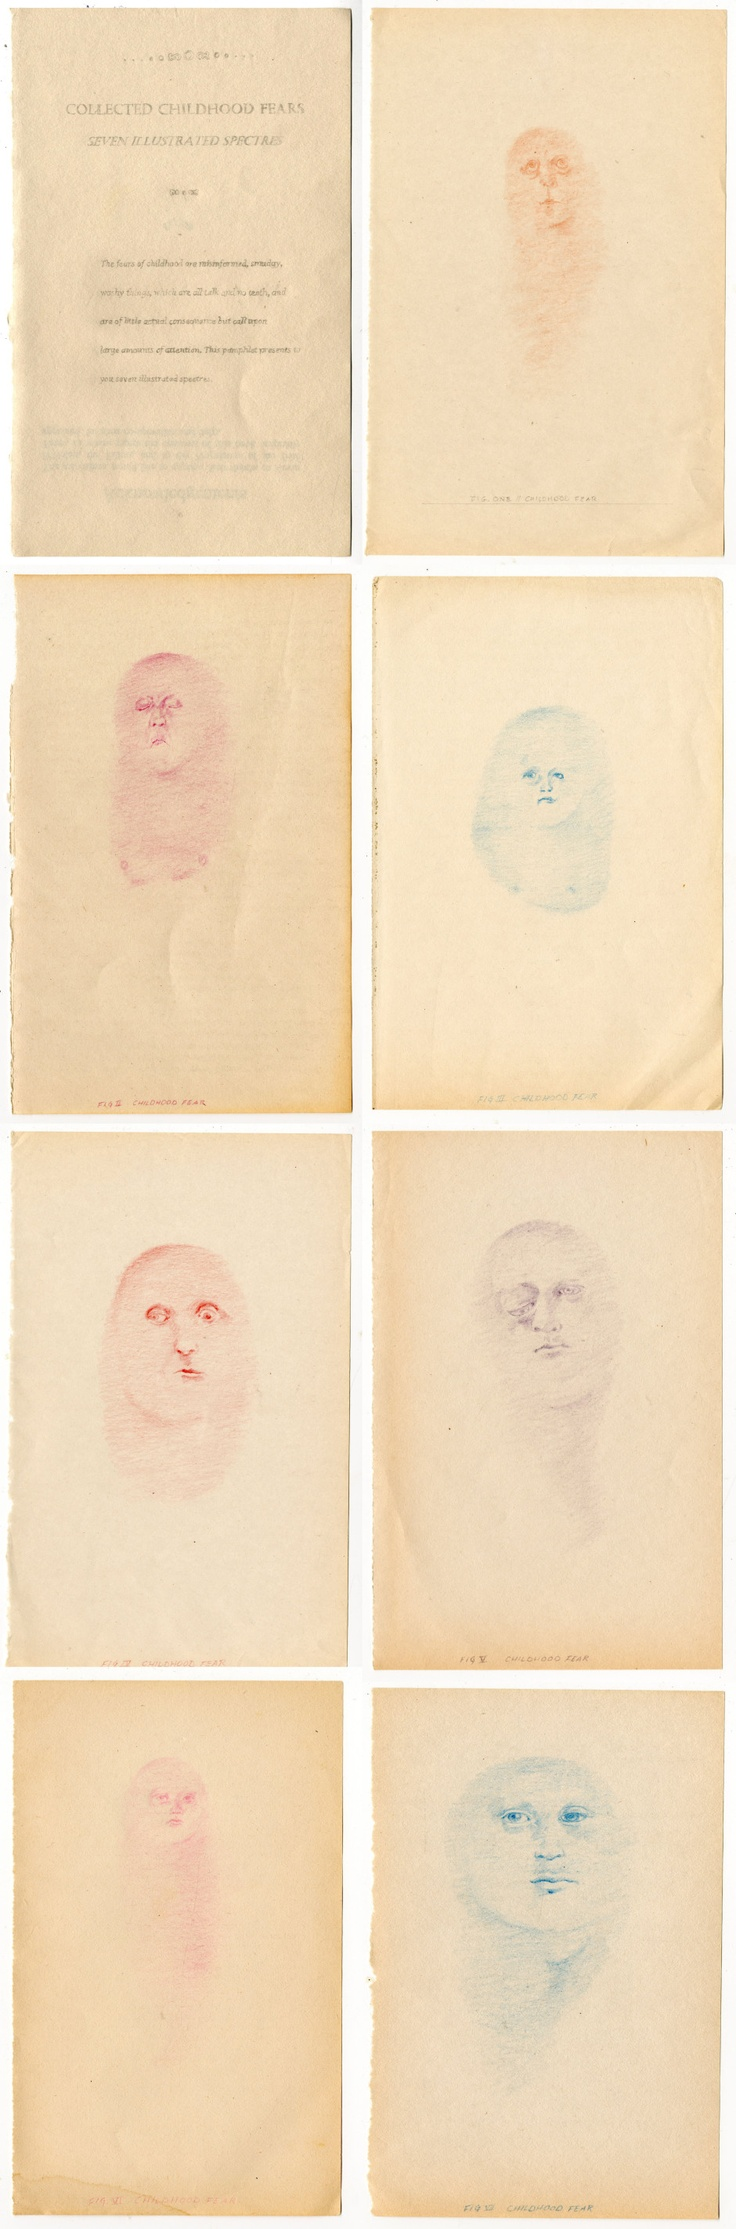 Collected Childhood Fears, Seven Illustrated Spectres,  Eleanor Phillips, 2013